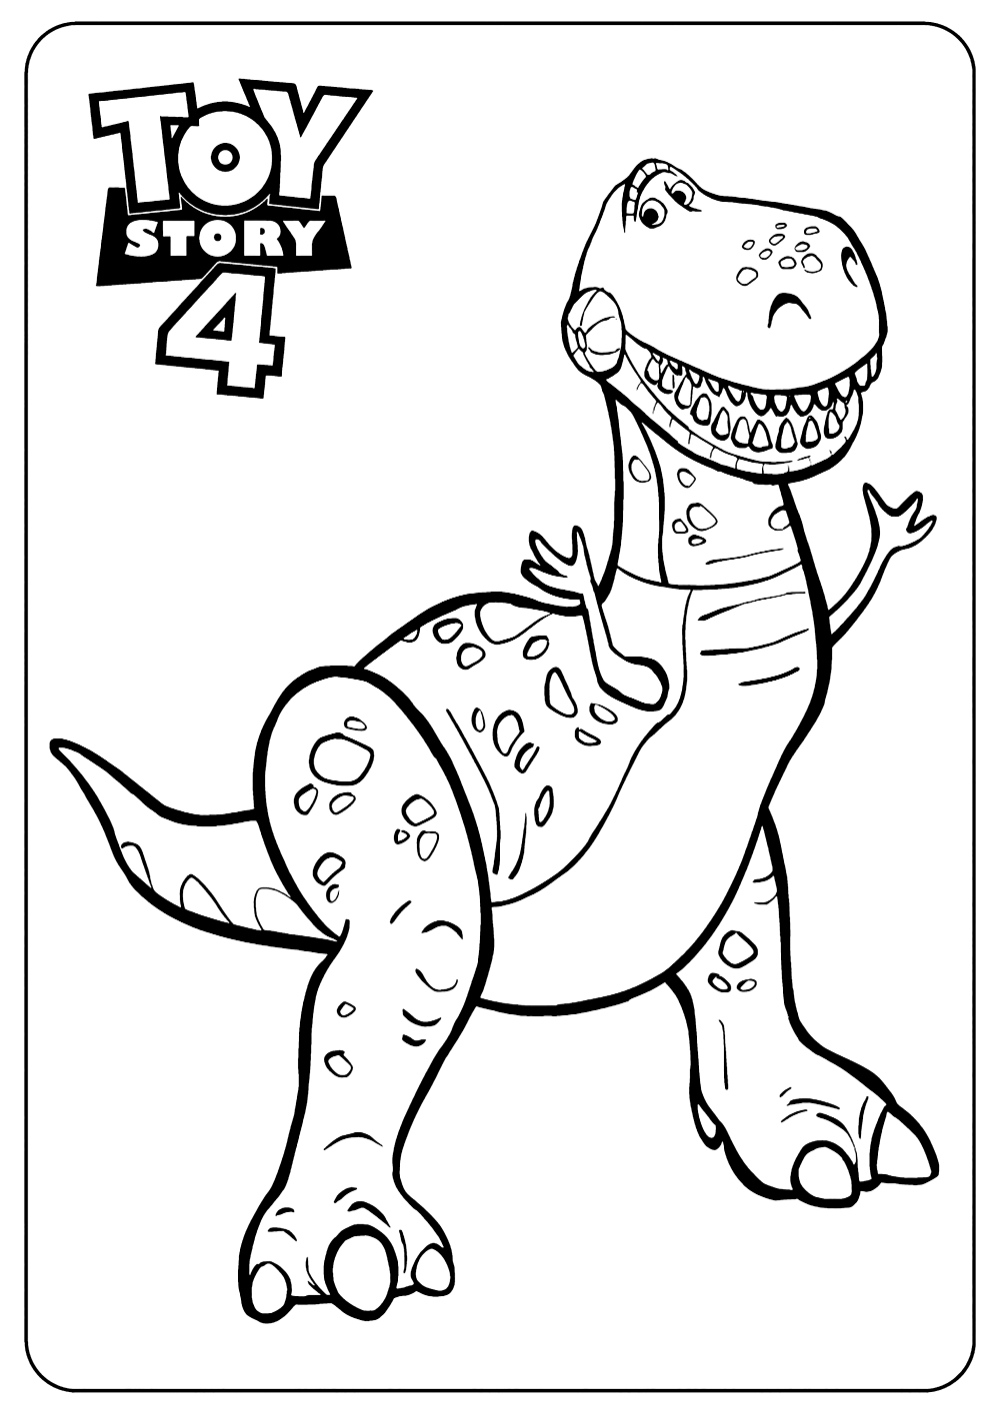 Free Toy Story 4 Coloring Page To Print And Color For Kids Rex Toy Story Coloring Pages Disney Coloring Pages Coloring Books